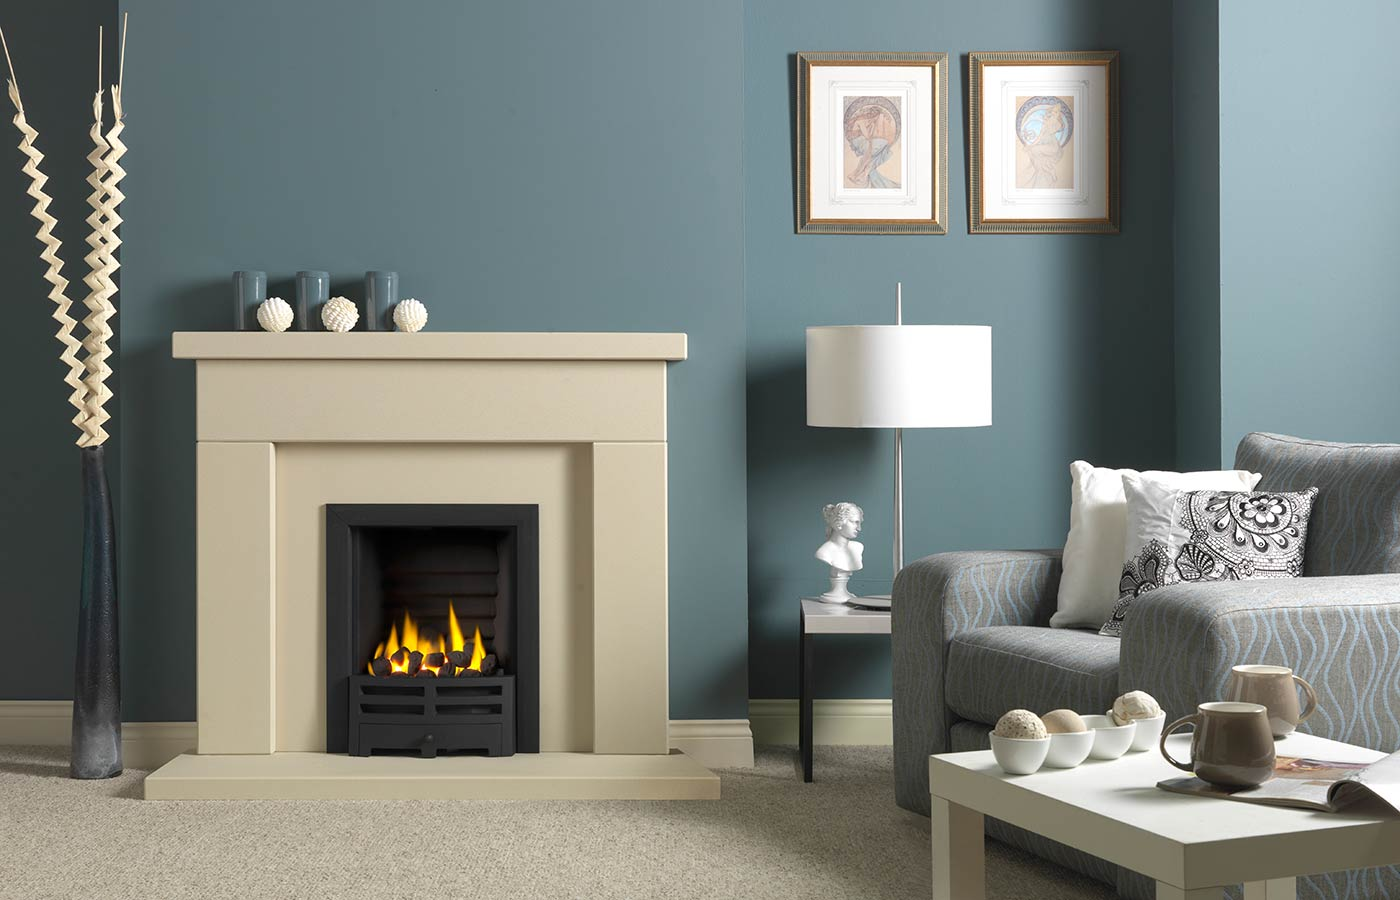 "Durrington 48"" Fireplace Suite in Chiltern Jurastone, with Gallery Emperor (black) and Decorative Gas Fire"